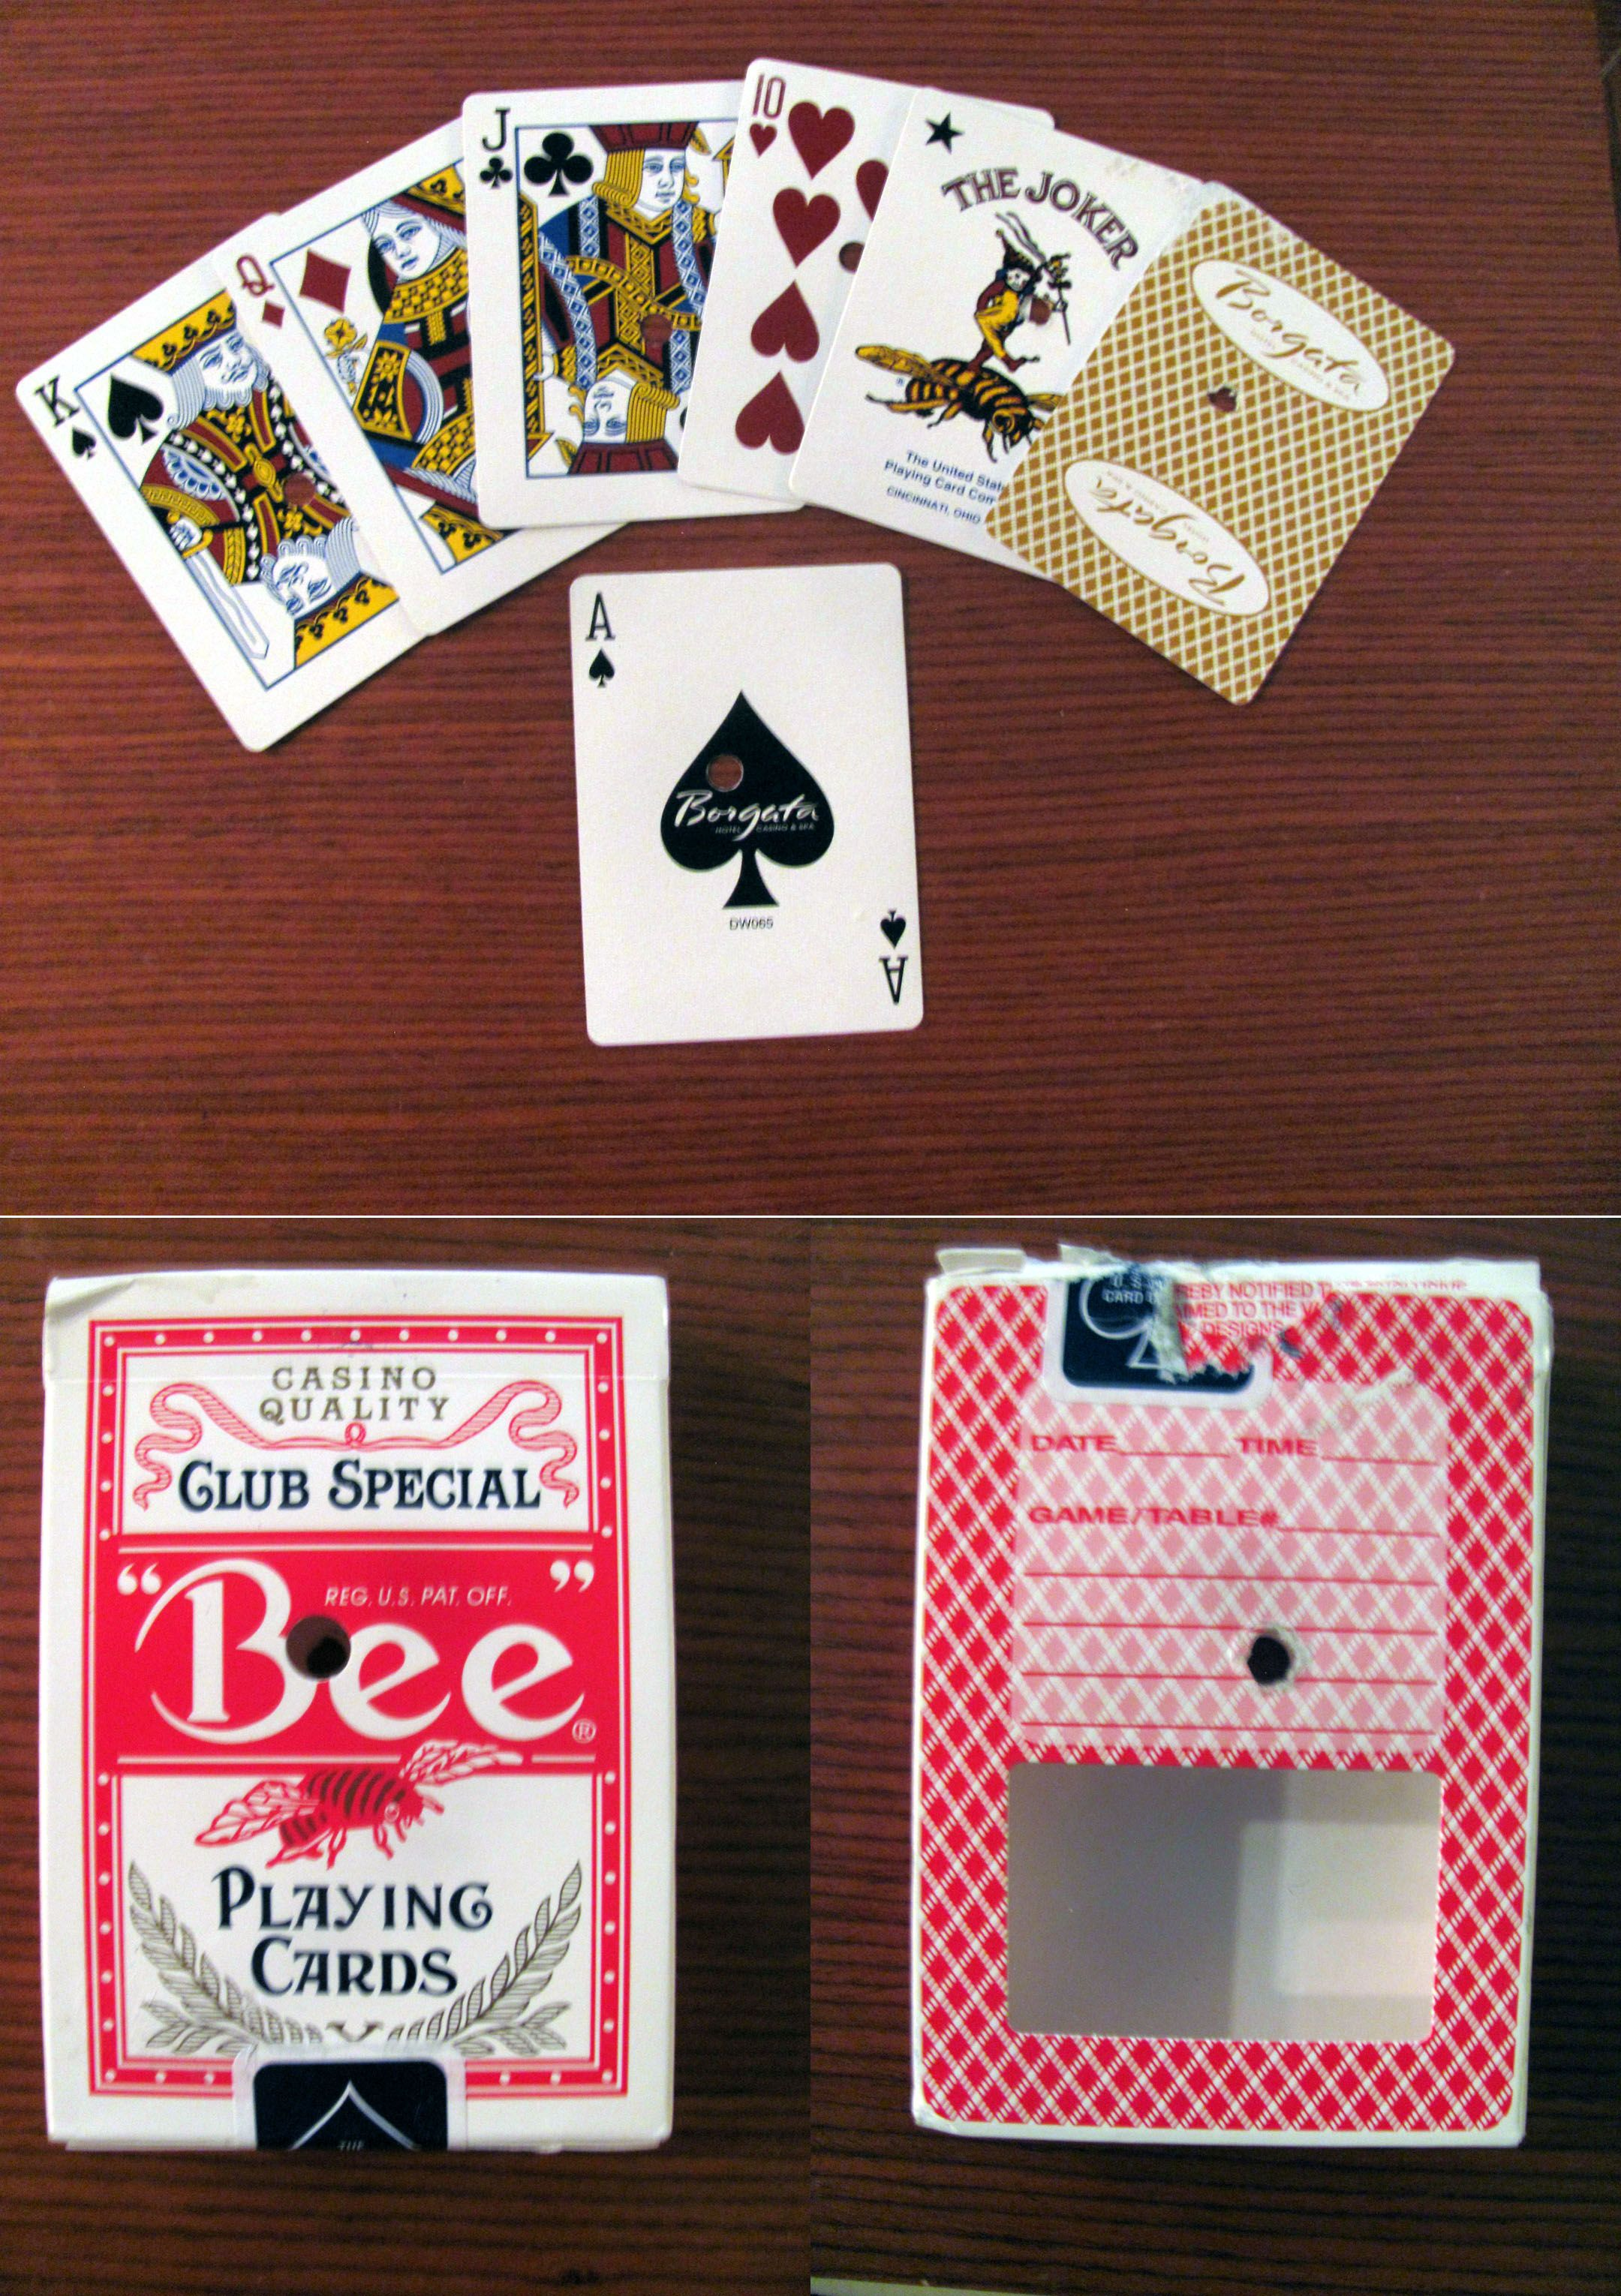 Bee Club Special Borgata Hotel Casino Tan Back Bee Playing Cards Deck Of Cards Casino